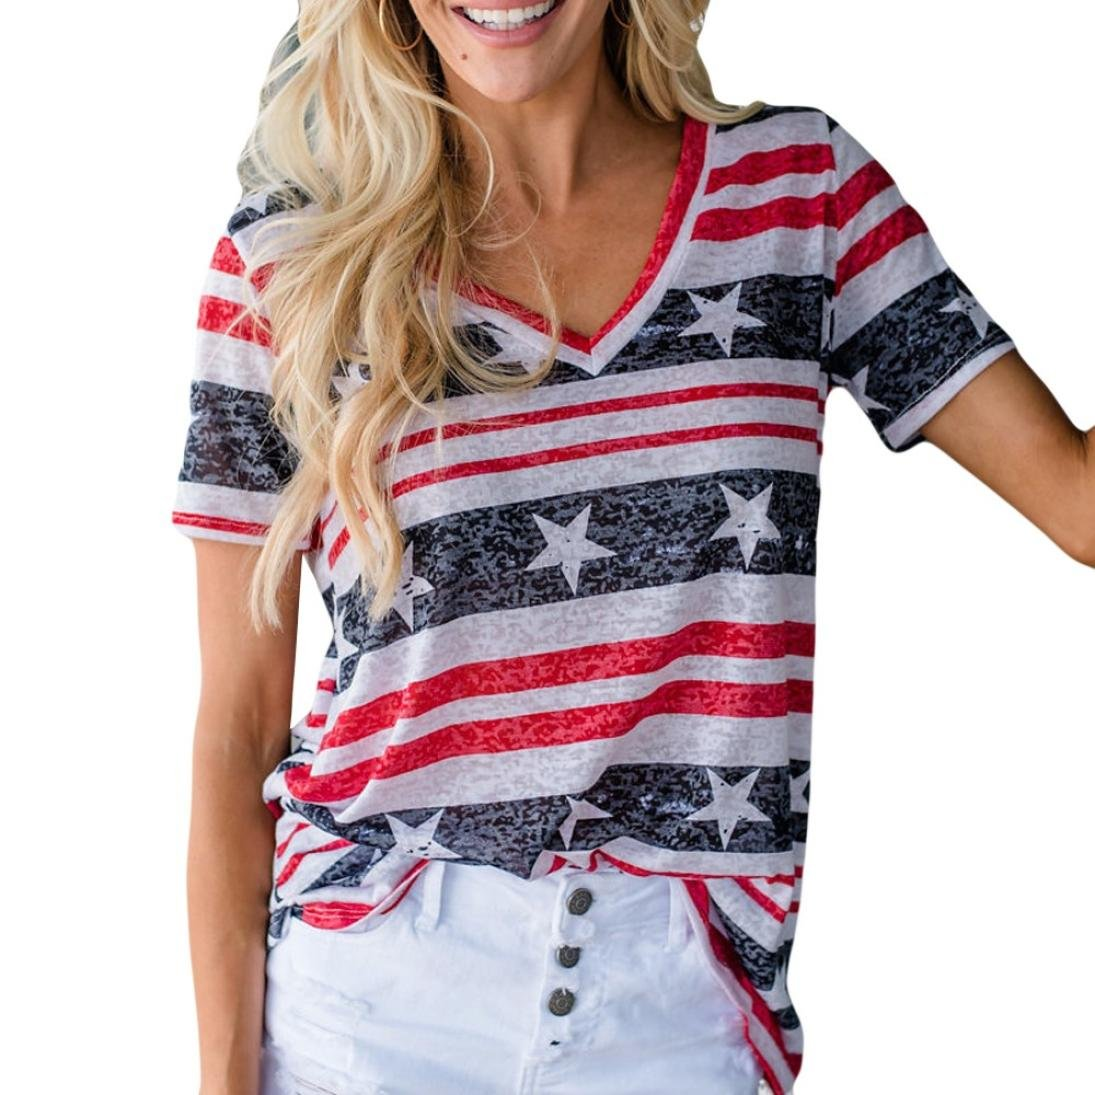 Elogoog Womens Short Sleeve Patriotic Blouse with USA Stripes Star Printed V Neck T-Shirt (Red, L)